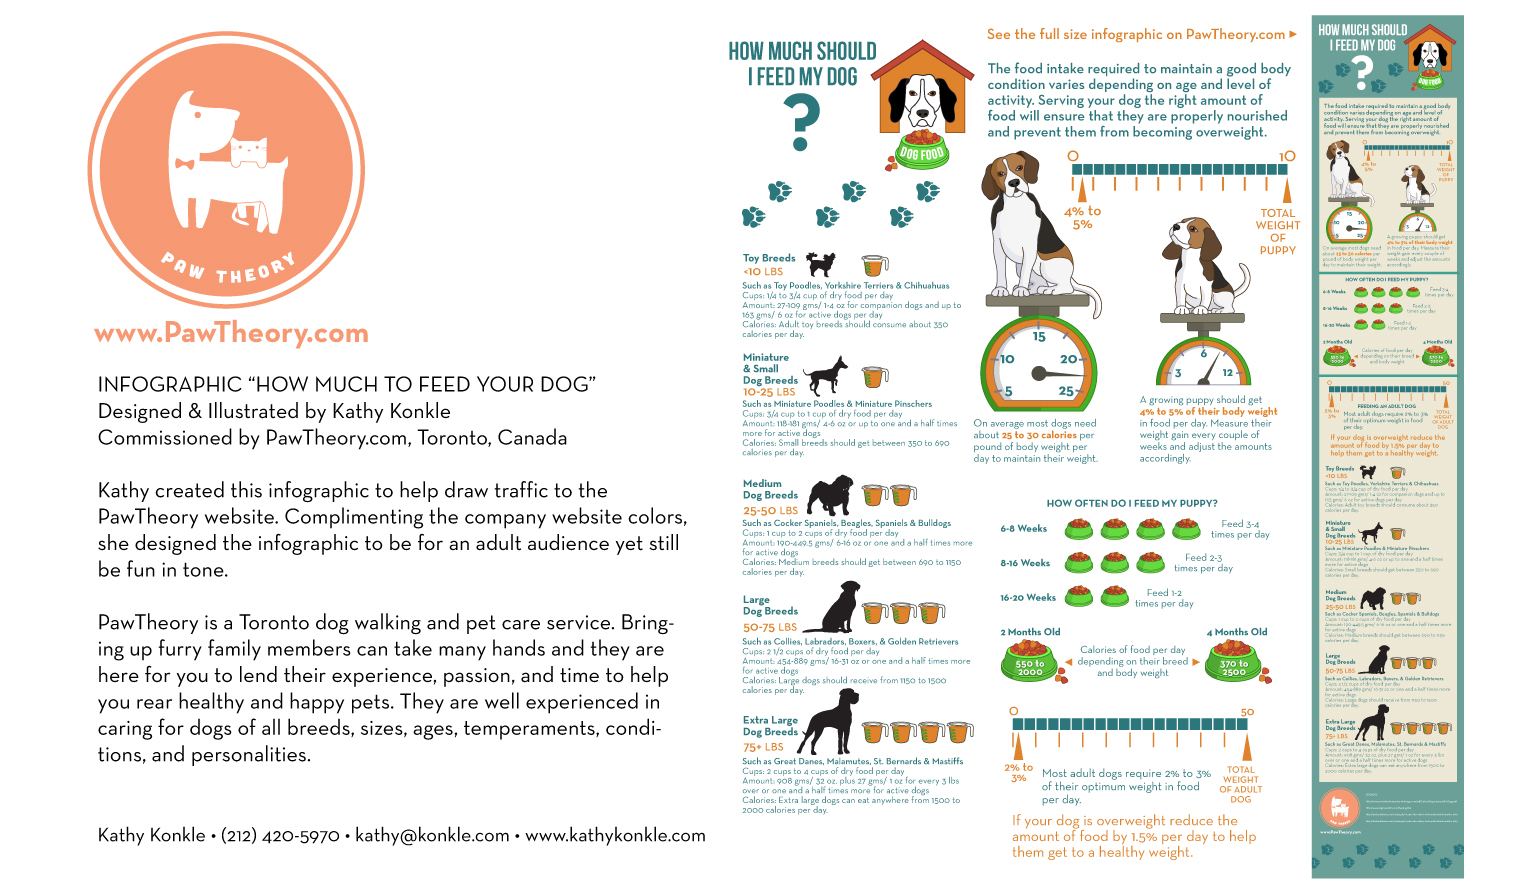 Feed-the-dog-infographic.jpg